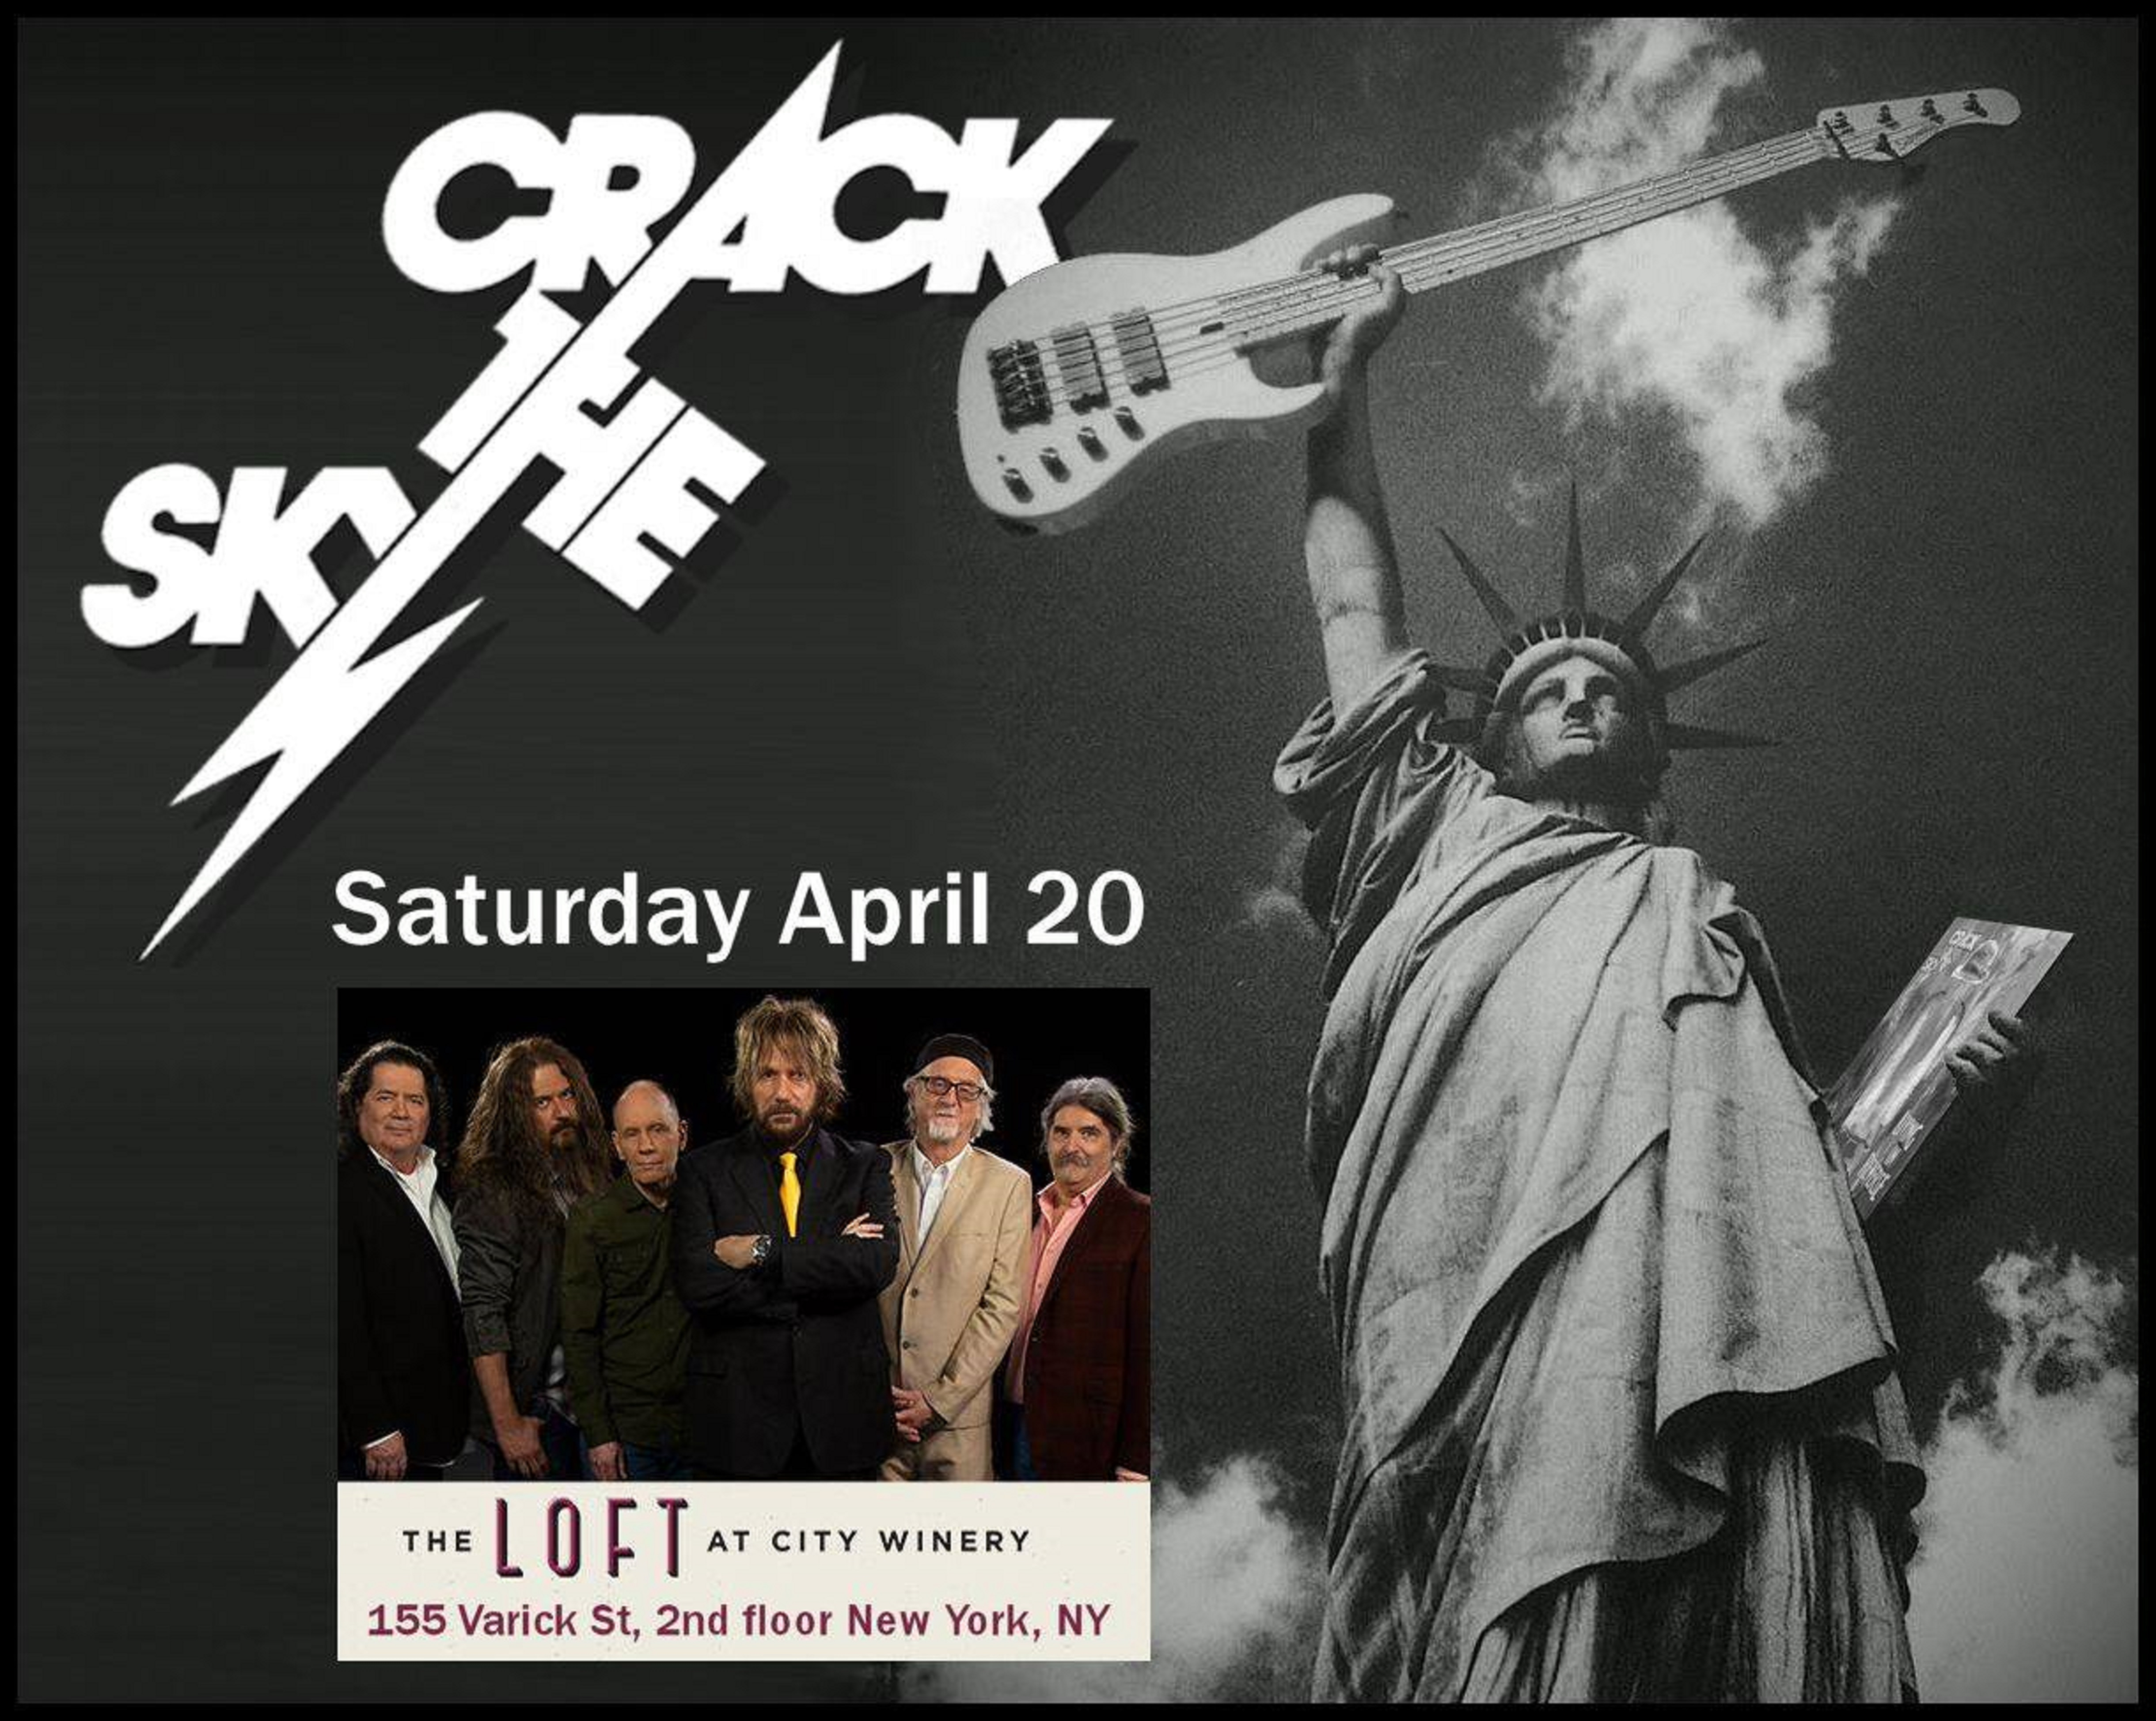 Crack The Sky to Play NYC on 4/20